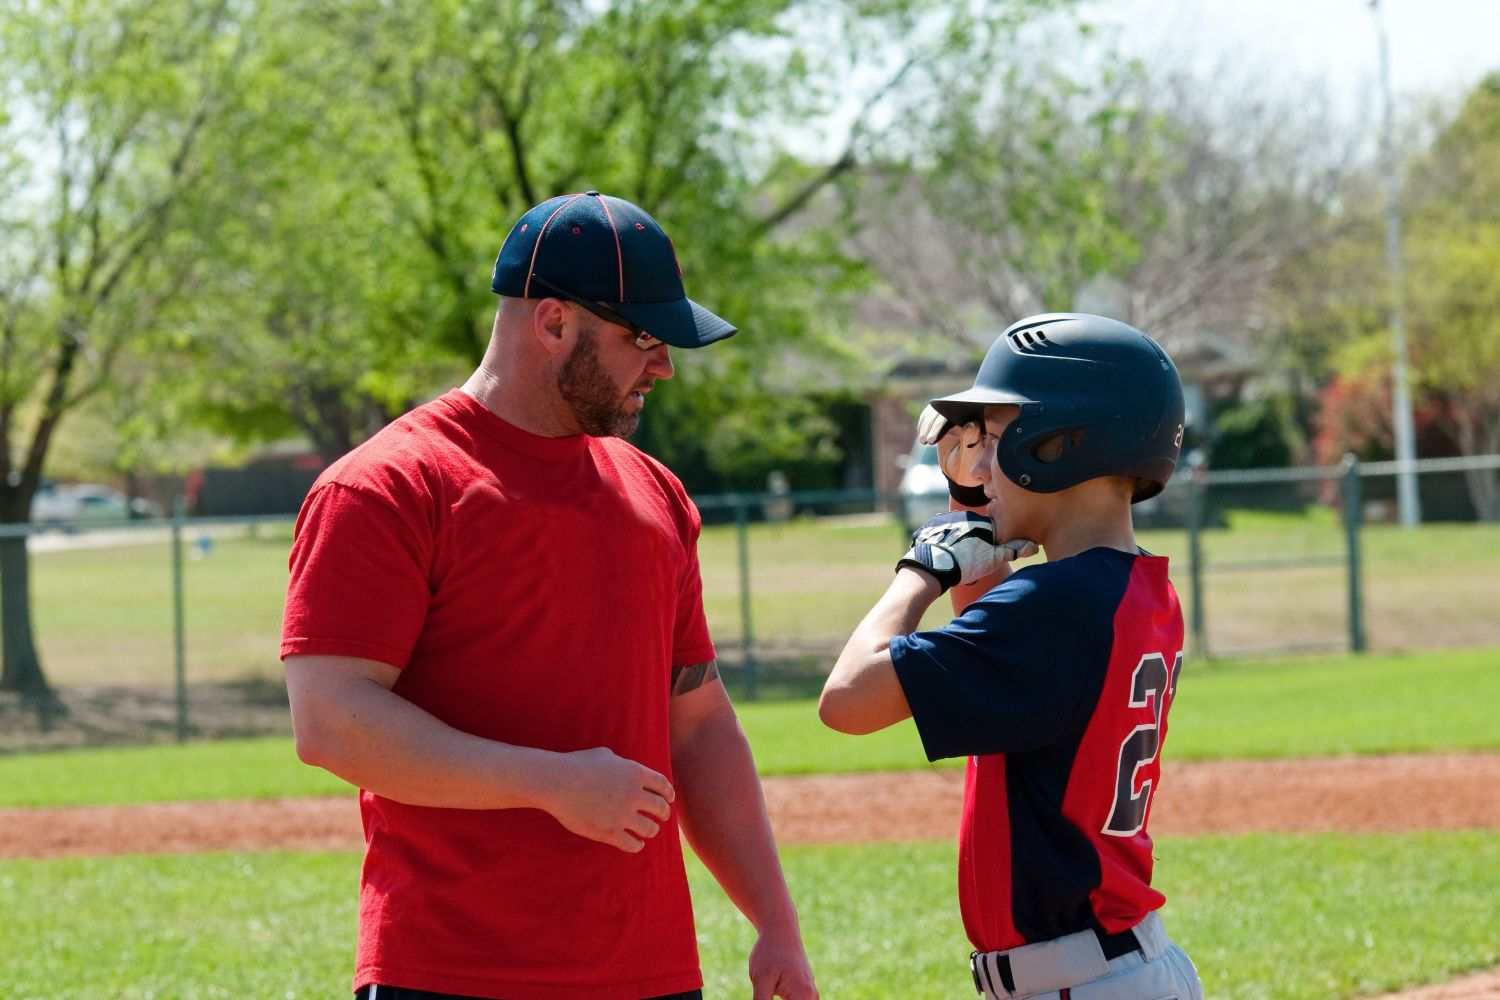 Youth Baseball Clinics